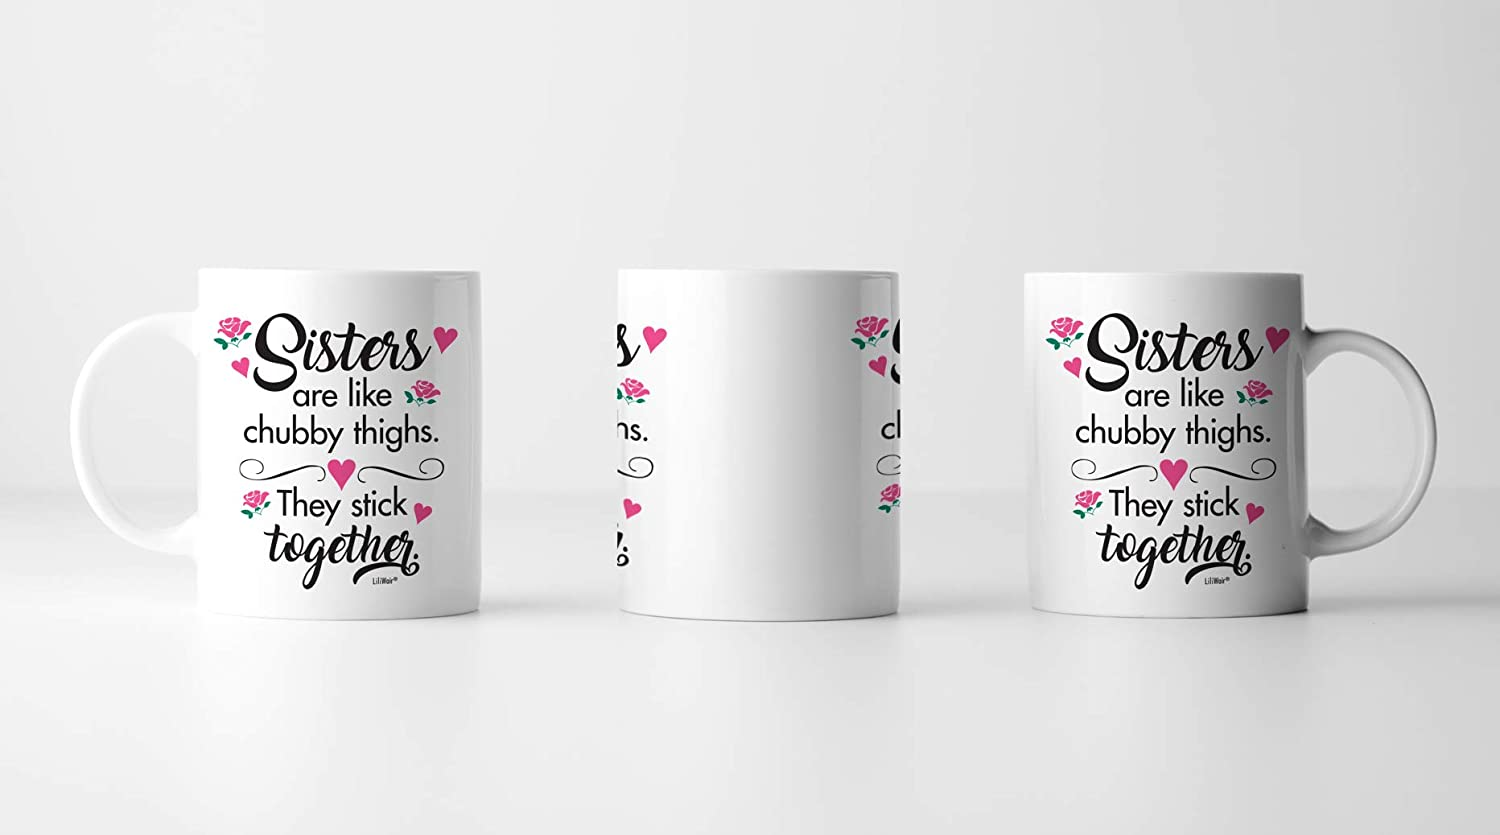 New Happy Funny Mugs Presents From Sister In Law Little Sister Birthday Gifts Mothers Day Gifts For Sister Funny Best Coffee Mug Cup Ideas Sister Gifts From Sister Big Sisters Gift From Brother